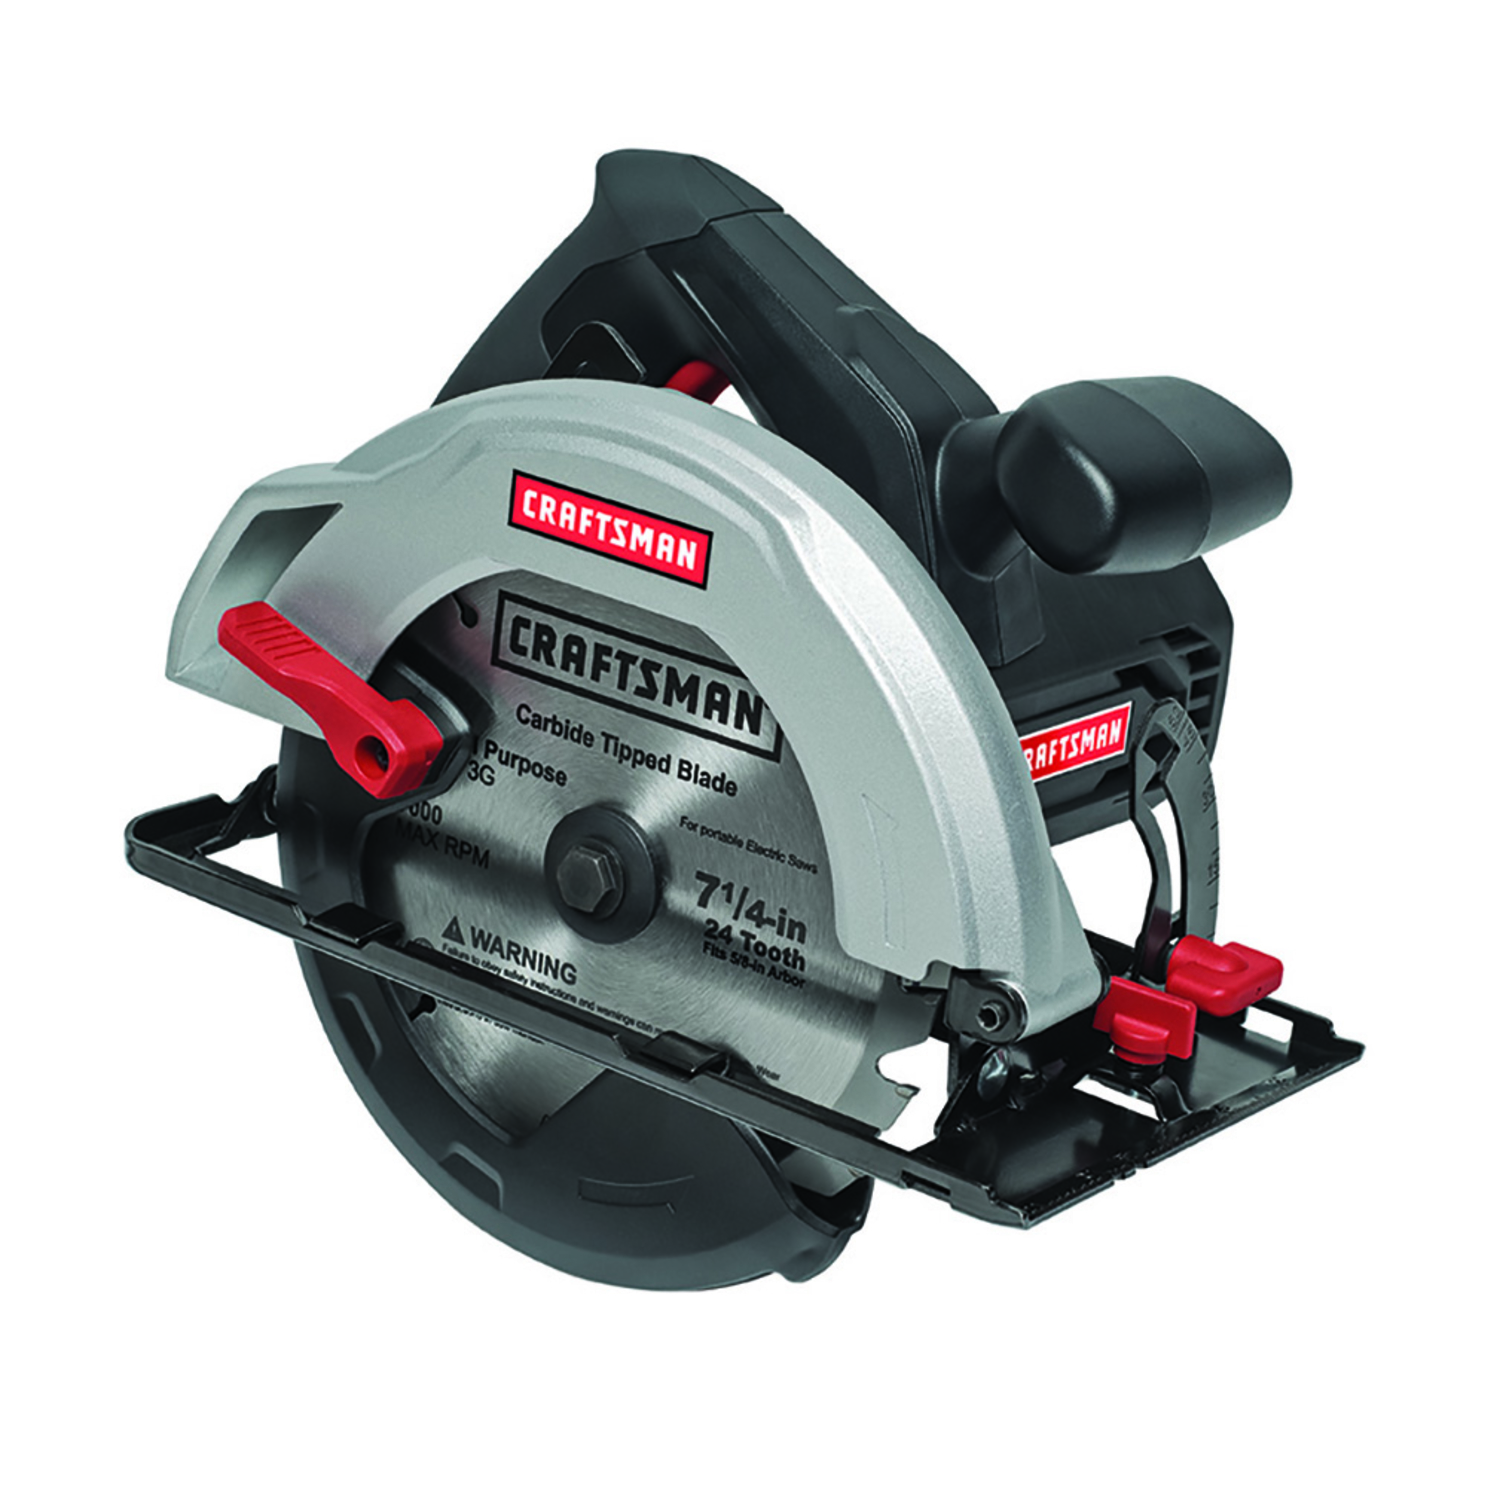 Craftsman 12 amps circular saw corded 5500 rpm 7 14 in ace hardware craftsman 12 amps circular saw corded 5500 rpm 7 14 greentooth Images